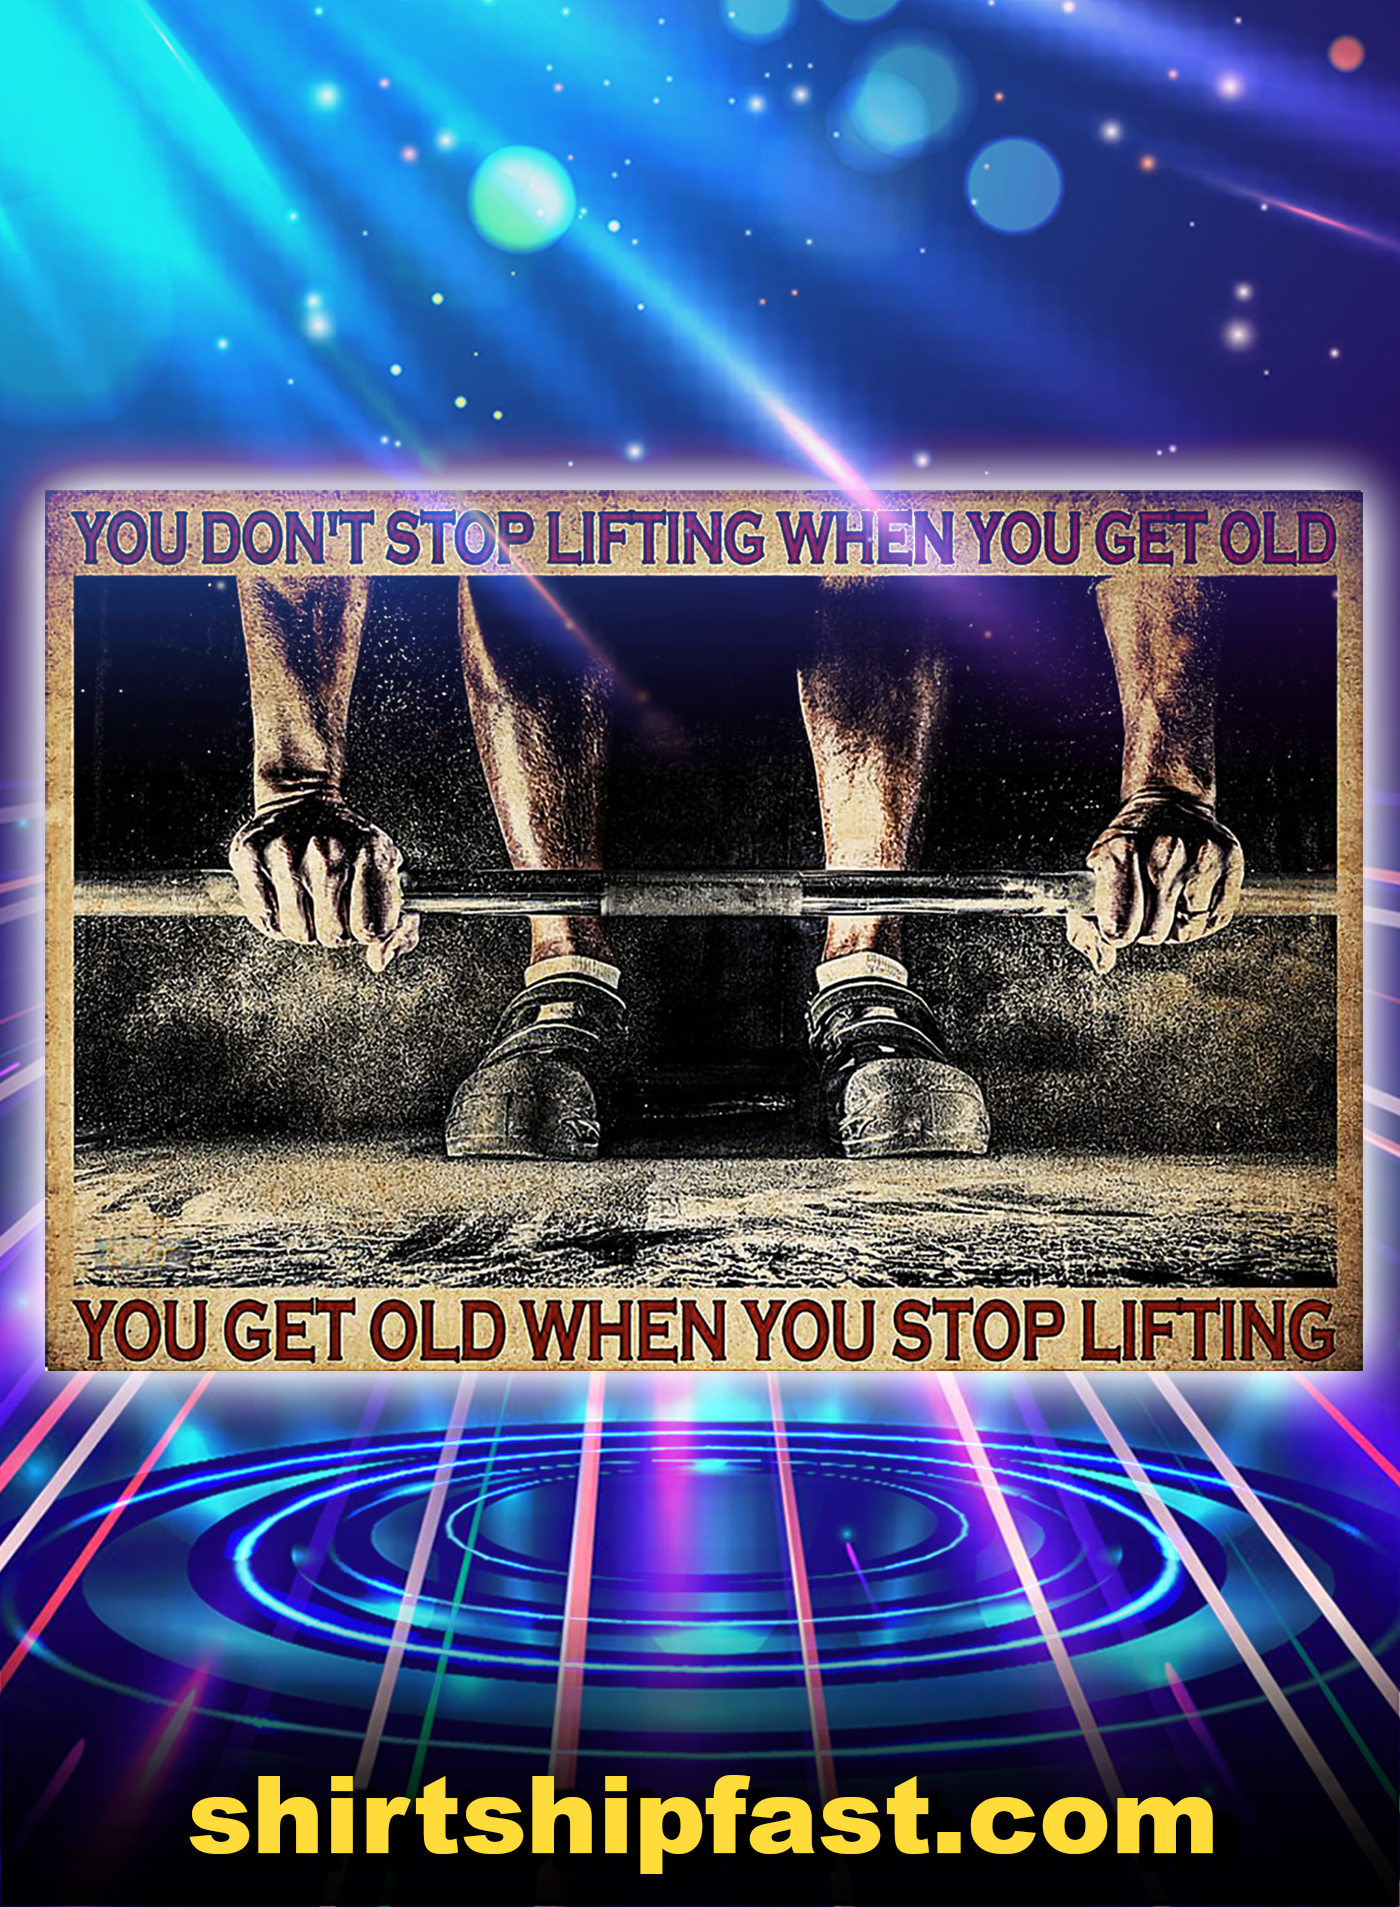 You don't stop lifting when you get old Fitness poster - A1